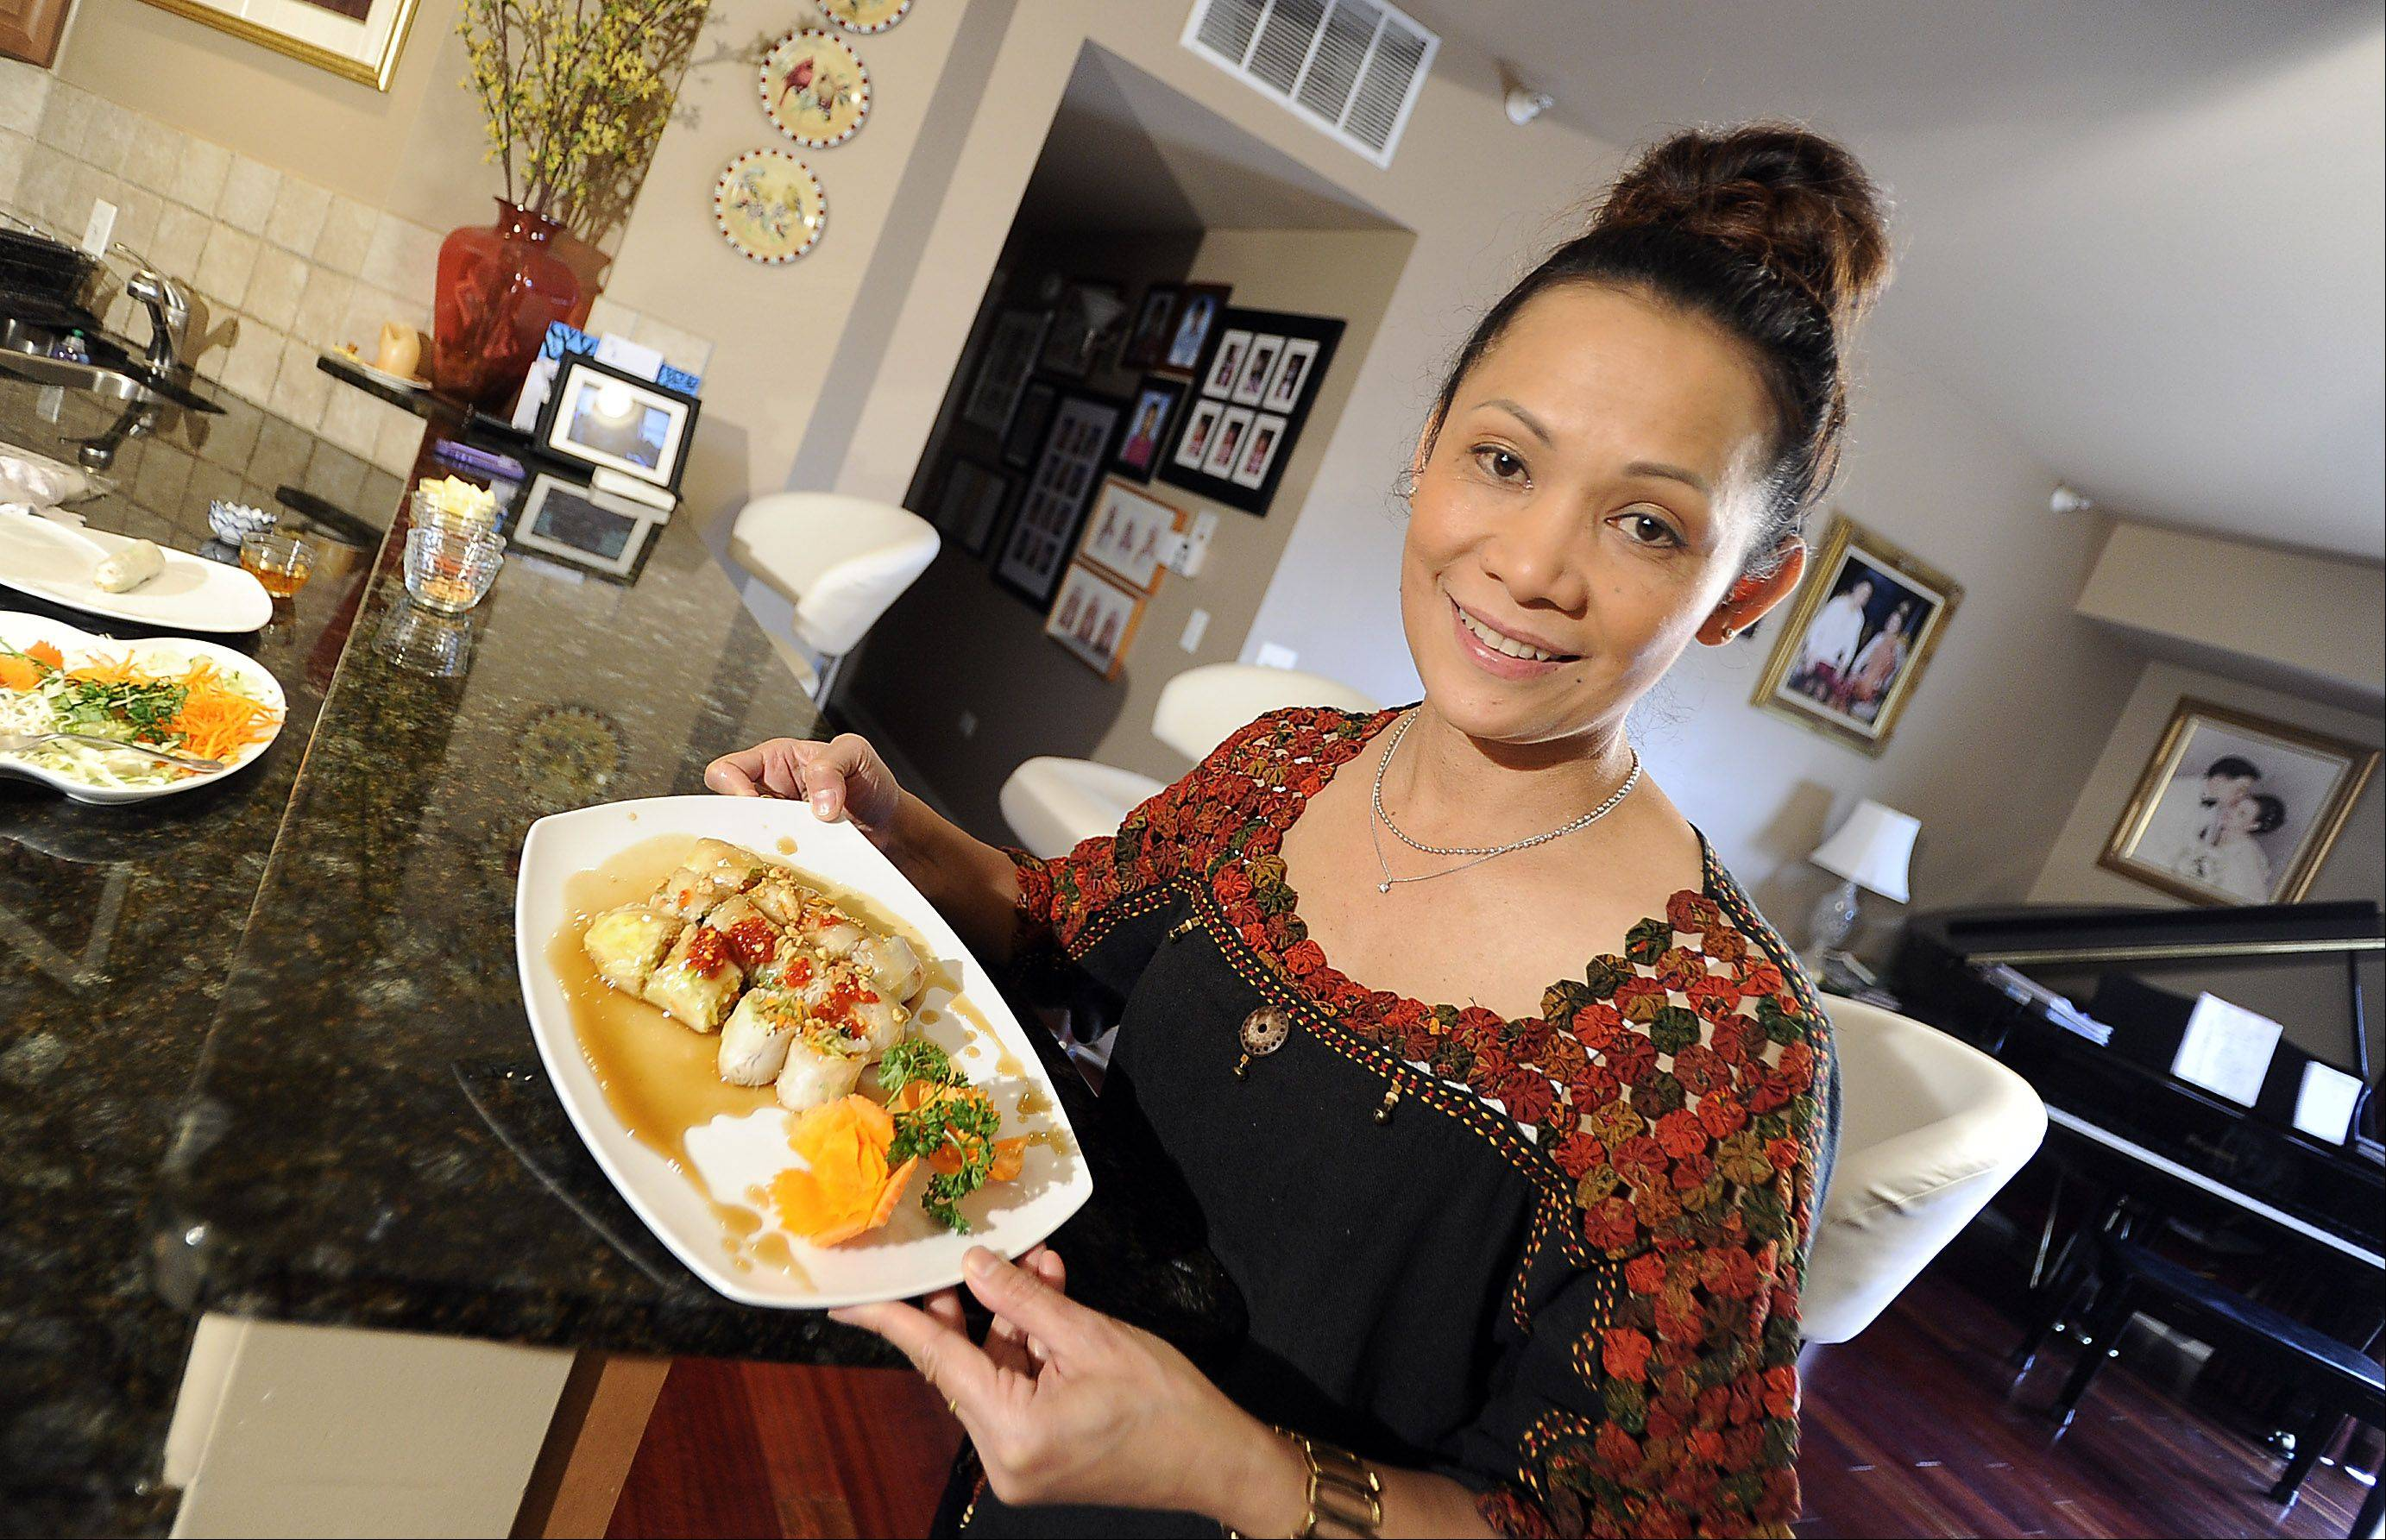 Cook of the Week: Mom relies on fresh ingredients to fuel family